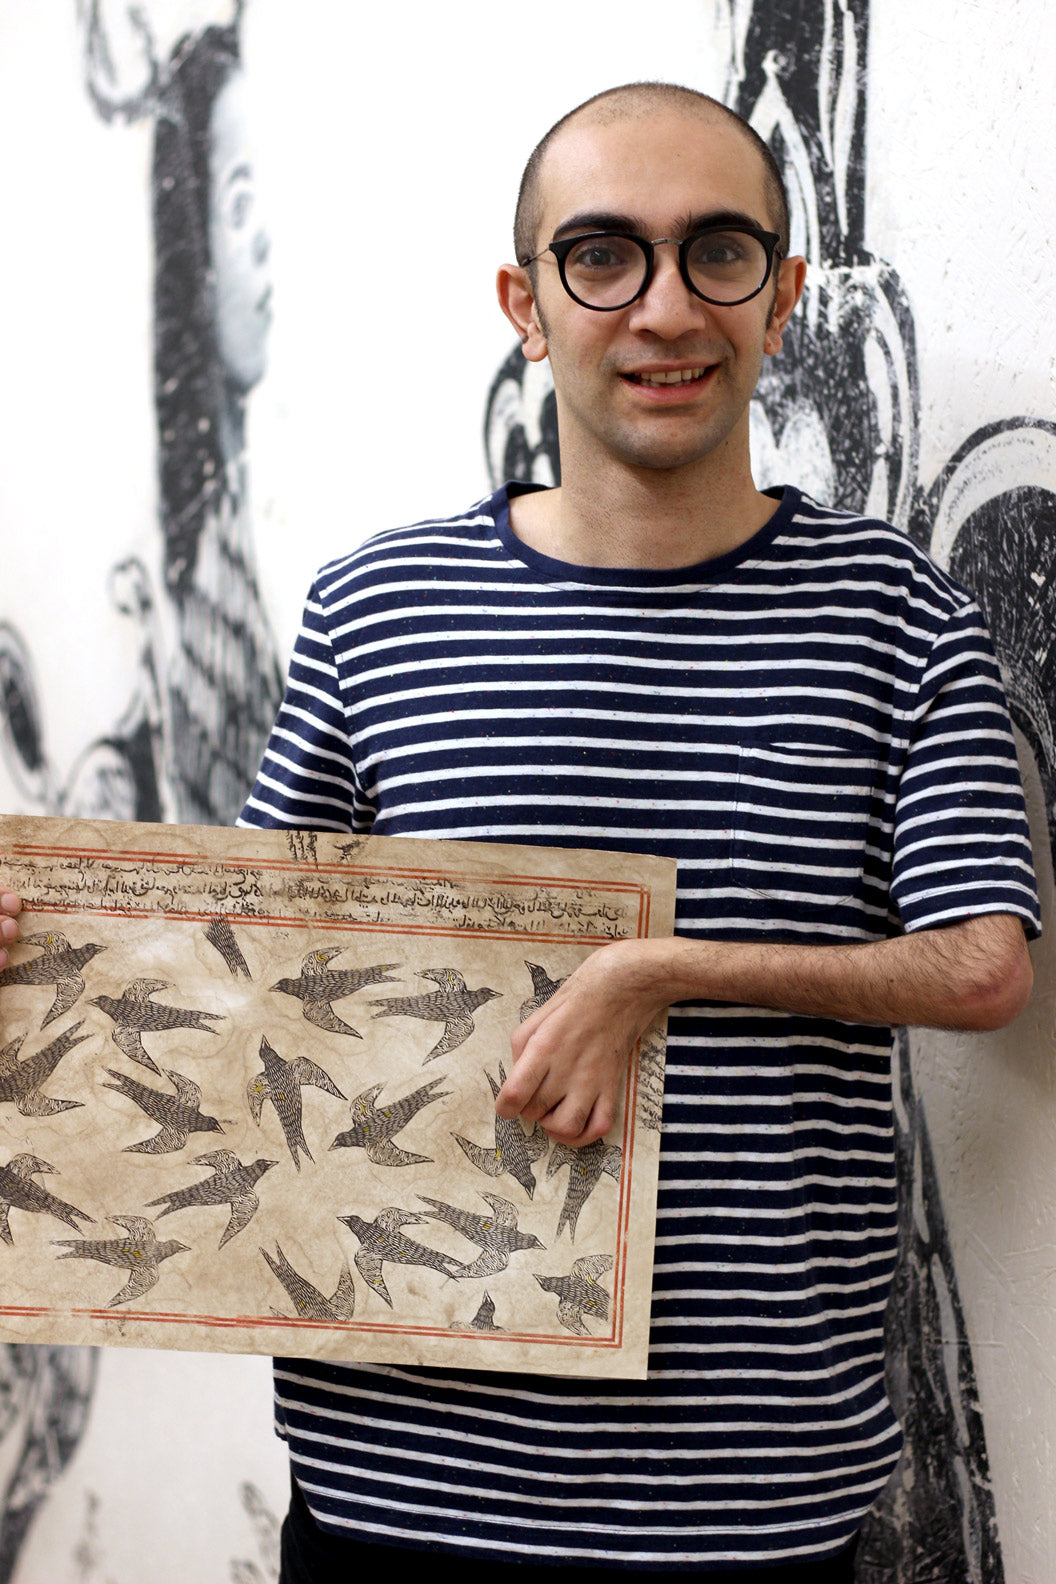 Interview with Mohammad Barrangi for Toi Art Gallery